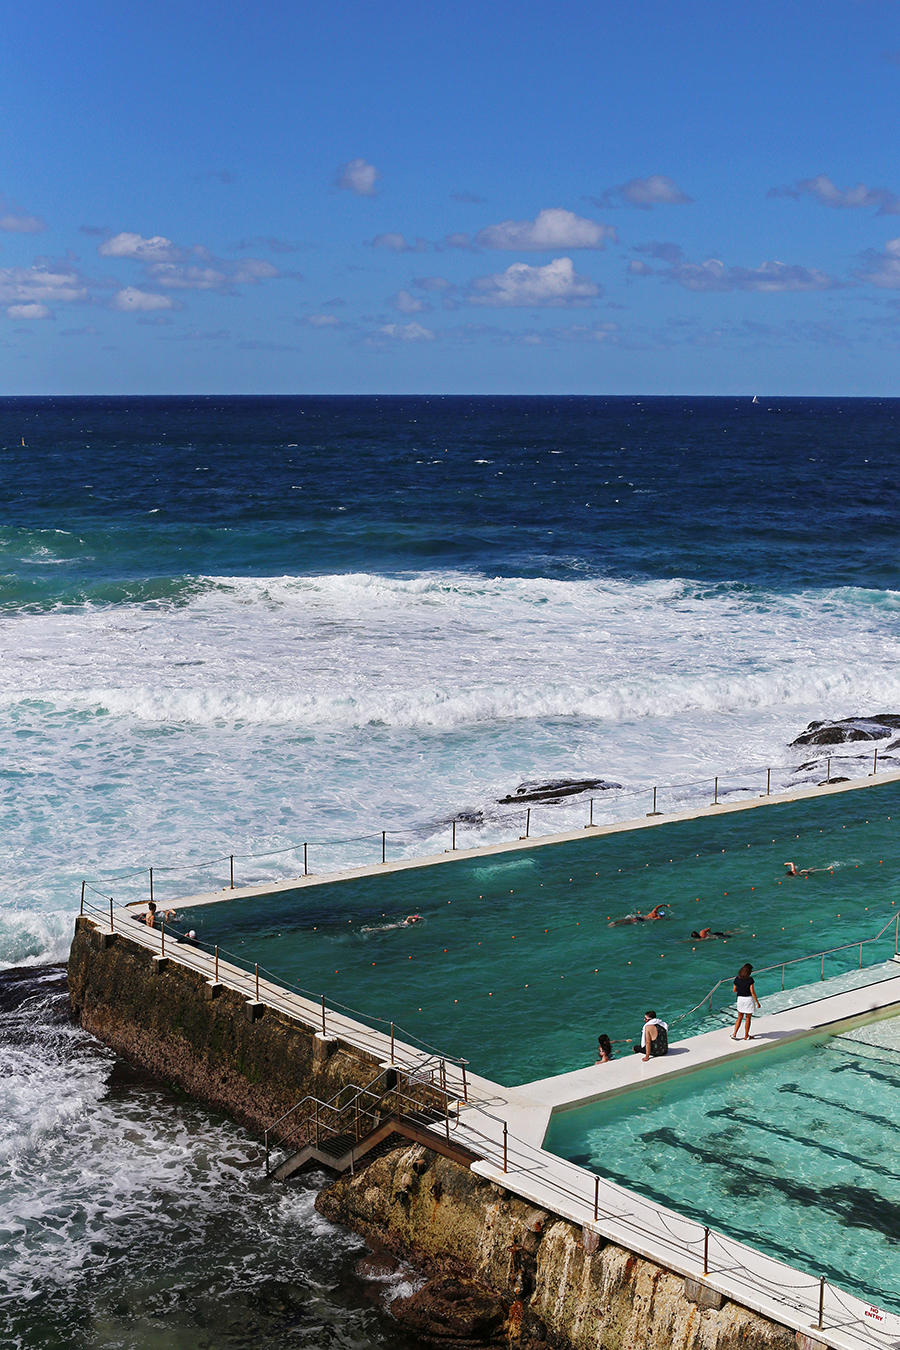 Sydney australia bondi beach fine dining at bondi icebergs club icebergs dining room and bar the club dining room is also a destination and for those who dont want to get their hair wet a great way to enjoy the famous dzzzfo